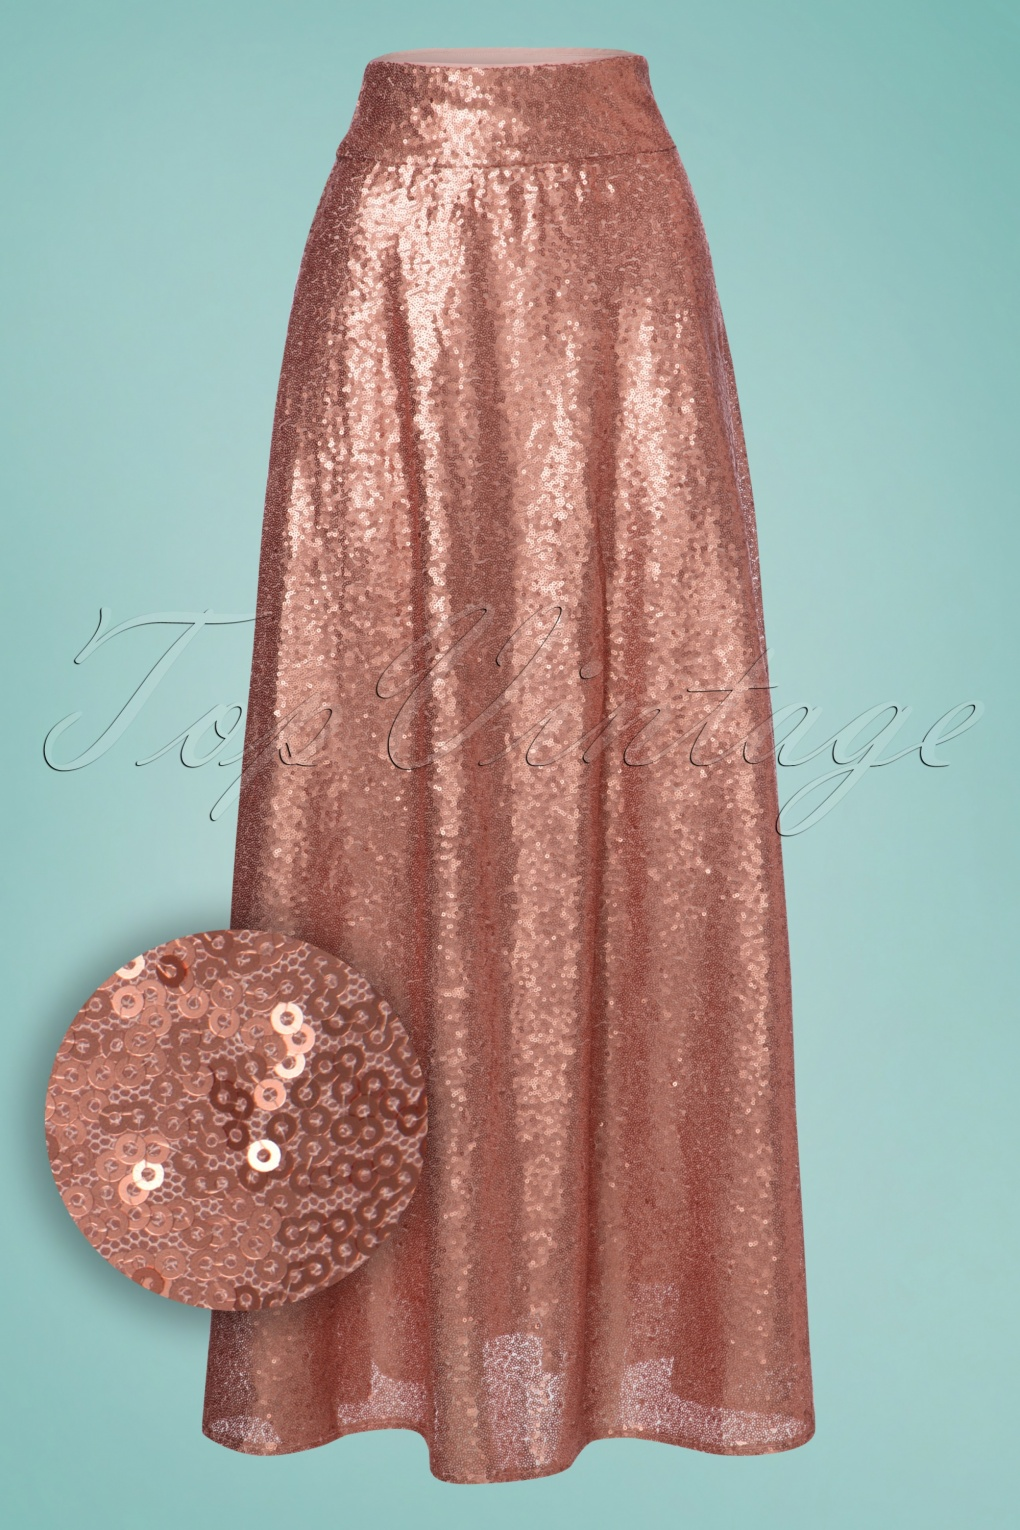 60s Skirts | Mini, Tweed, Plaid, Denim Skirts 70s Boogie Sequins Maxi Skirt in Pink £81.51 AT vintagedancer.com